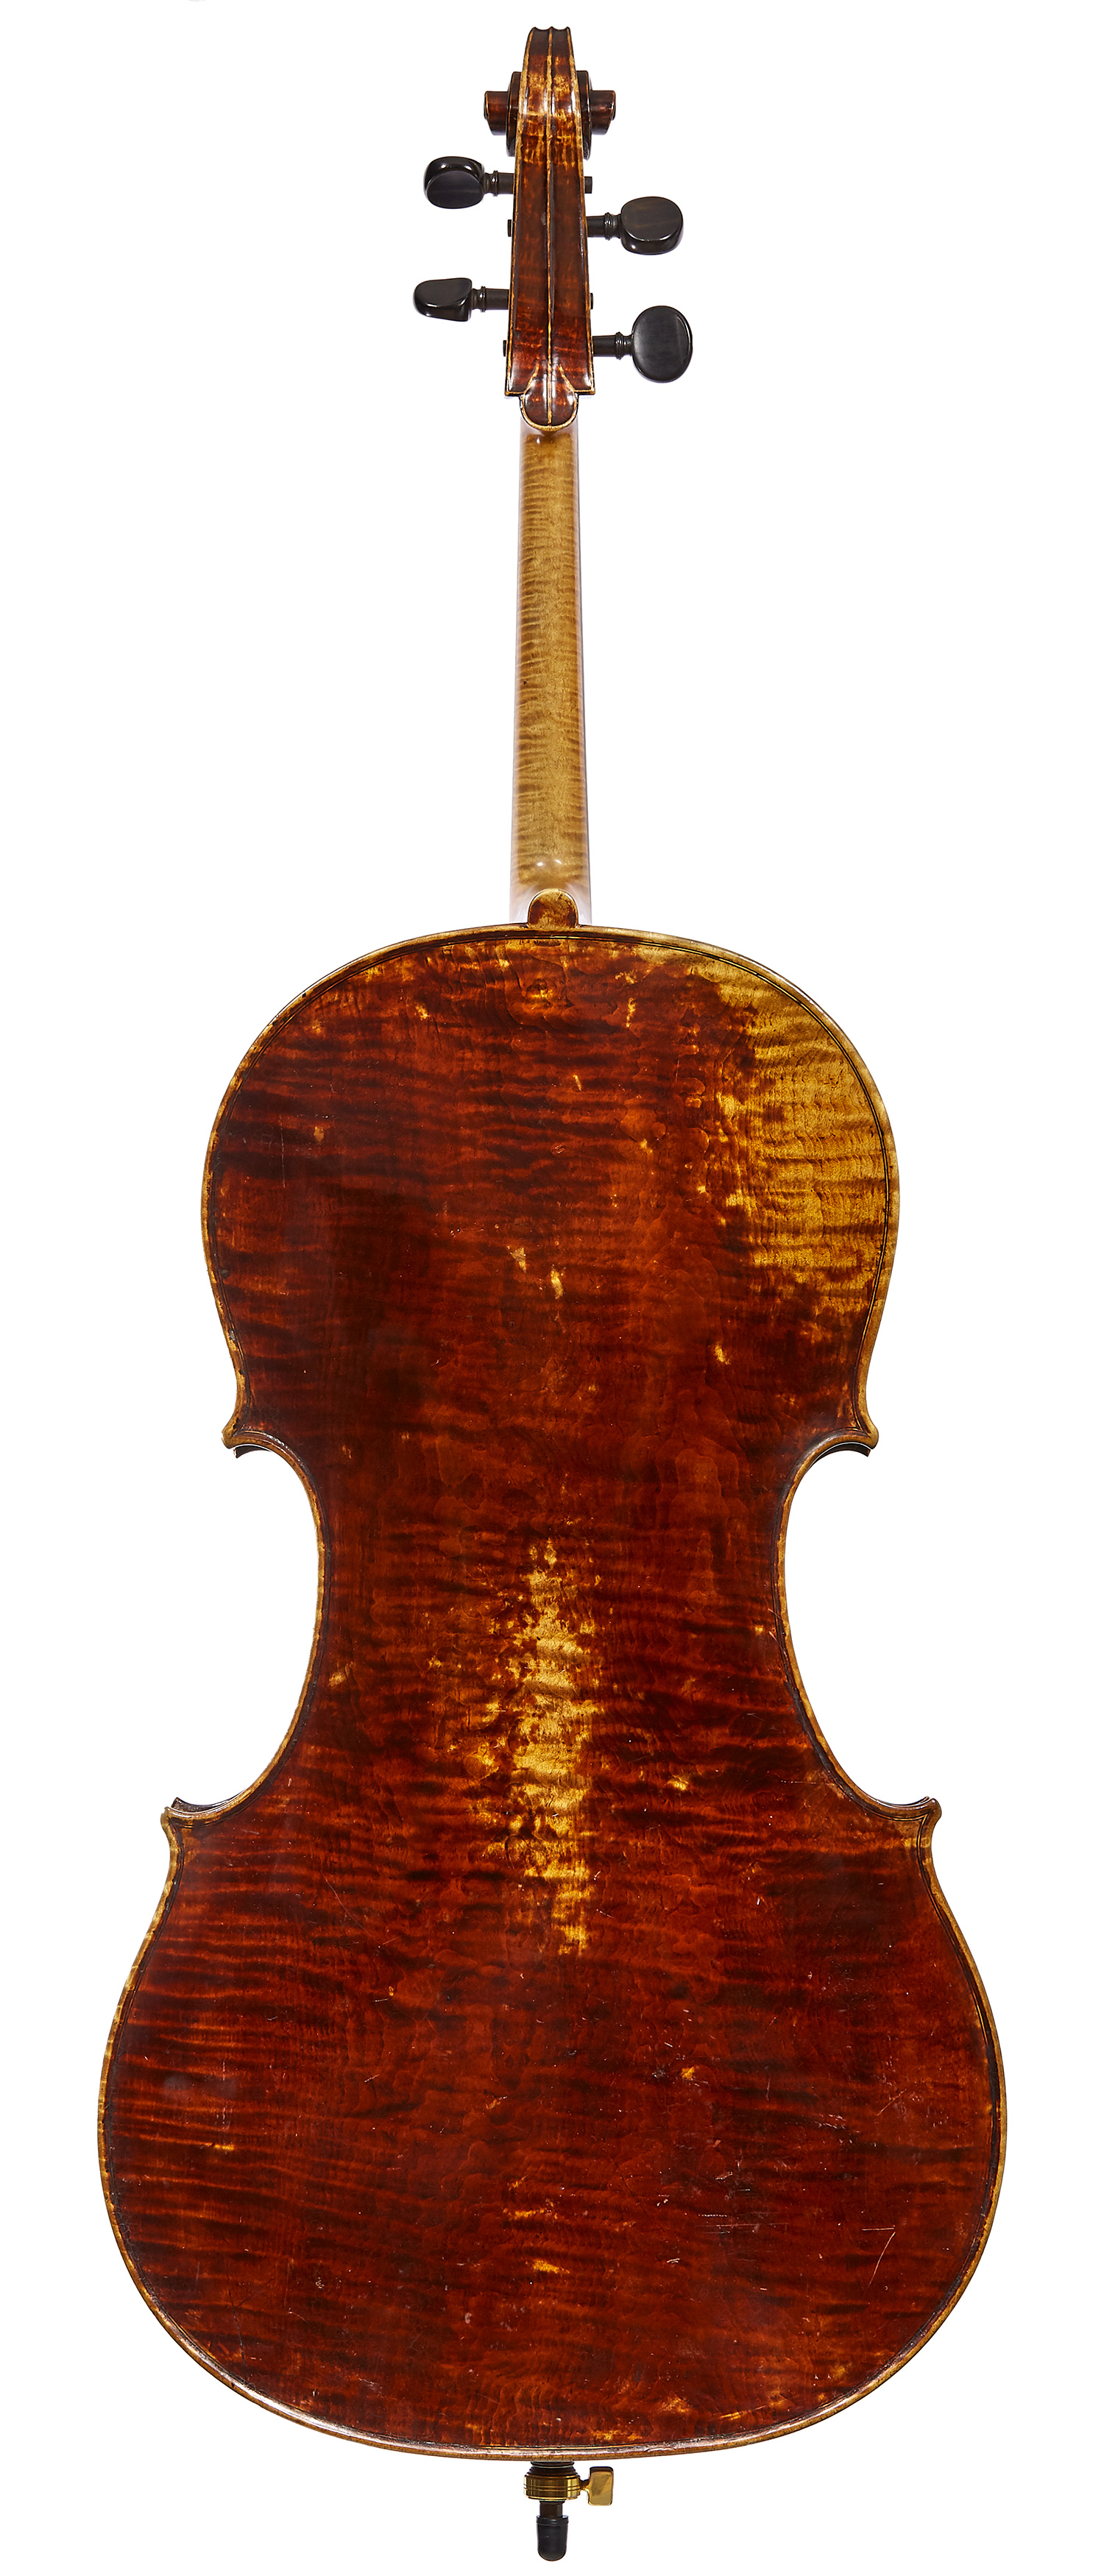 Silvestre cello back